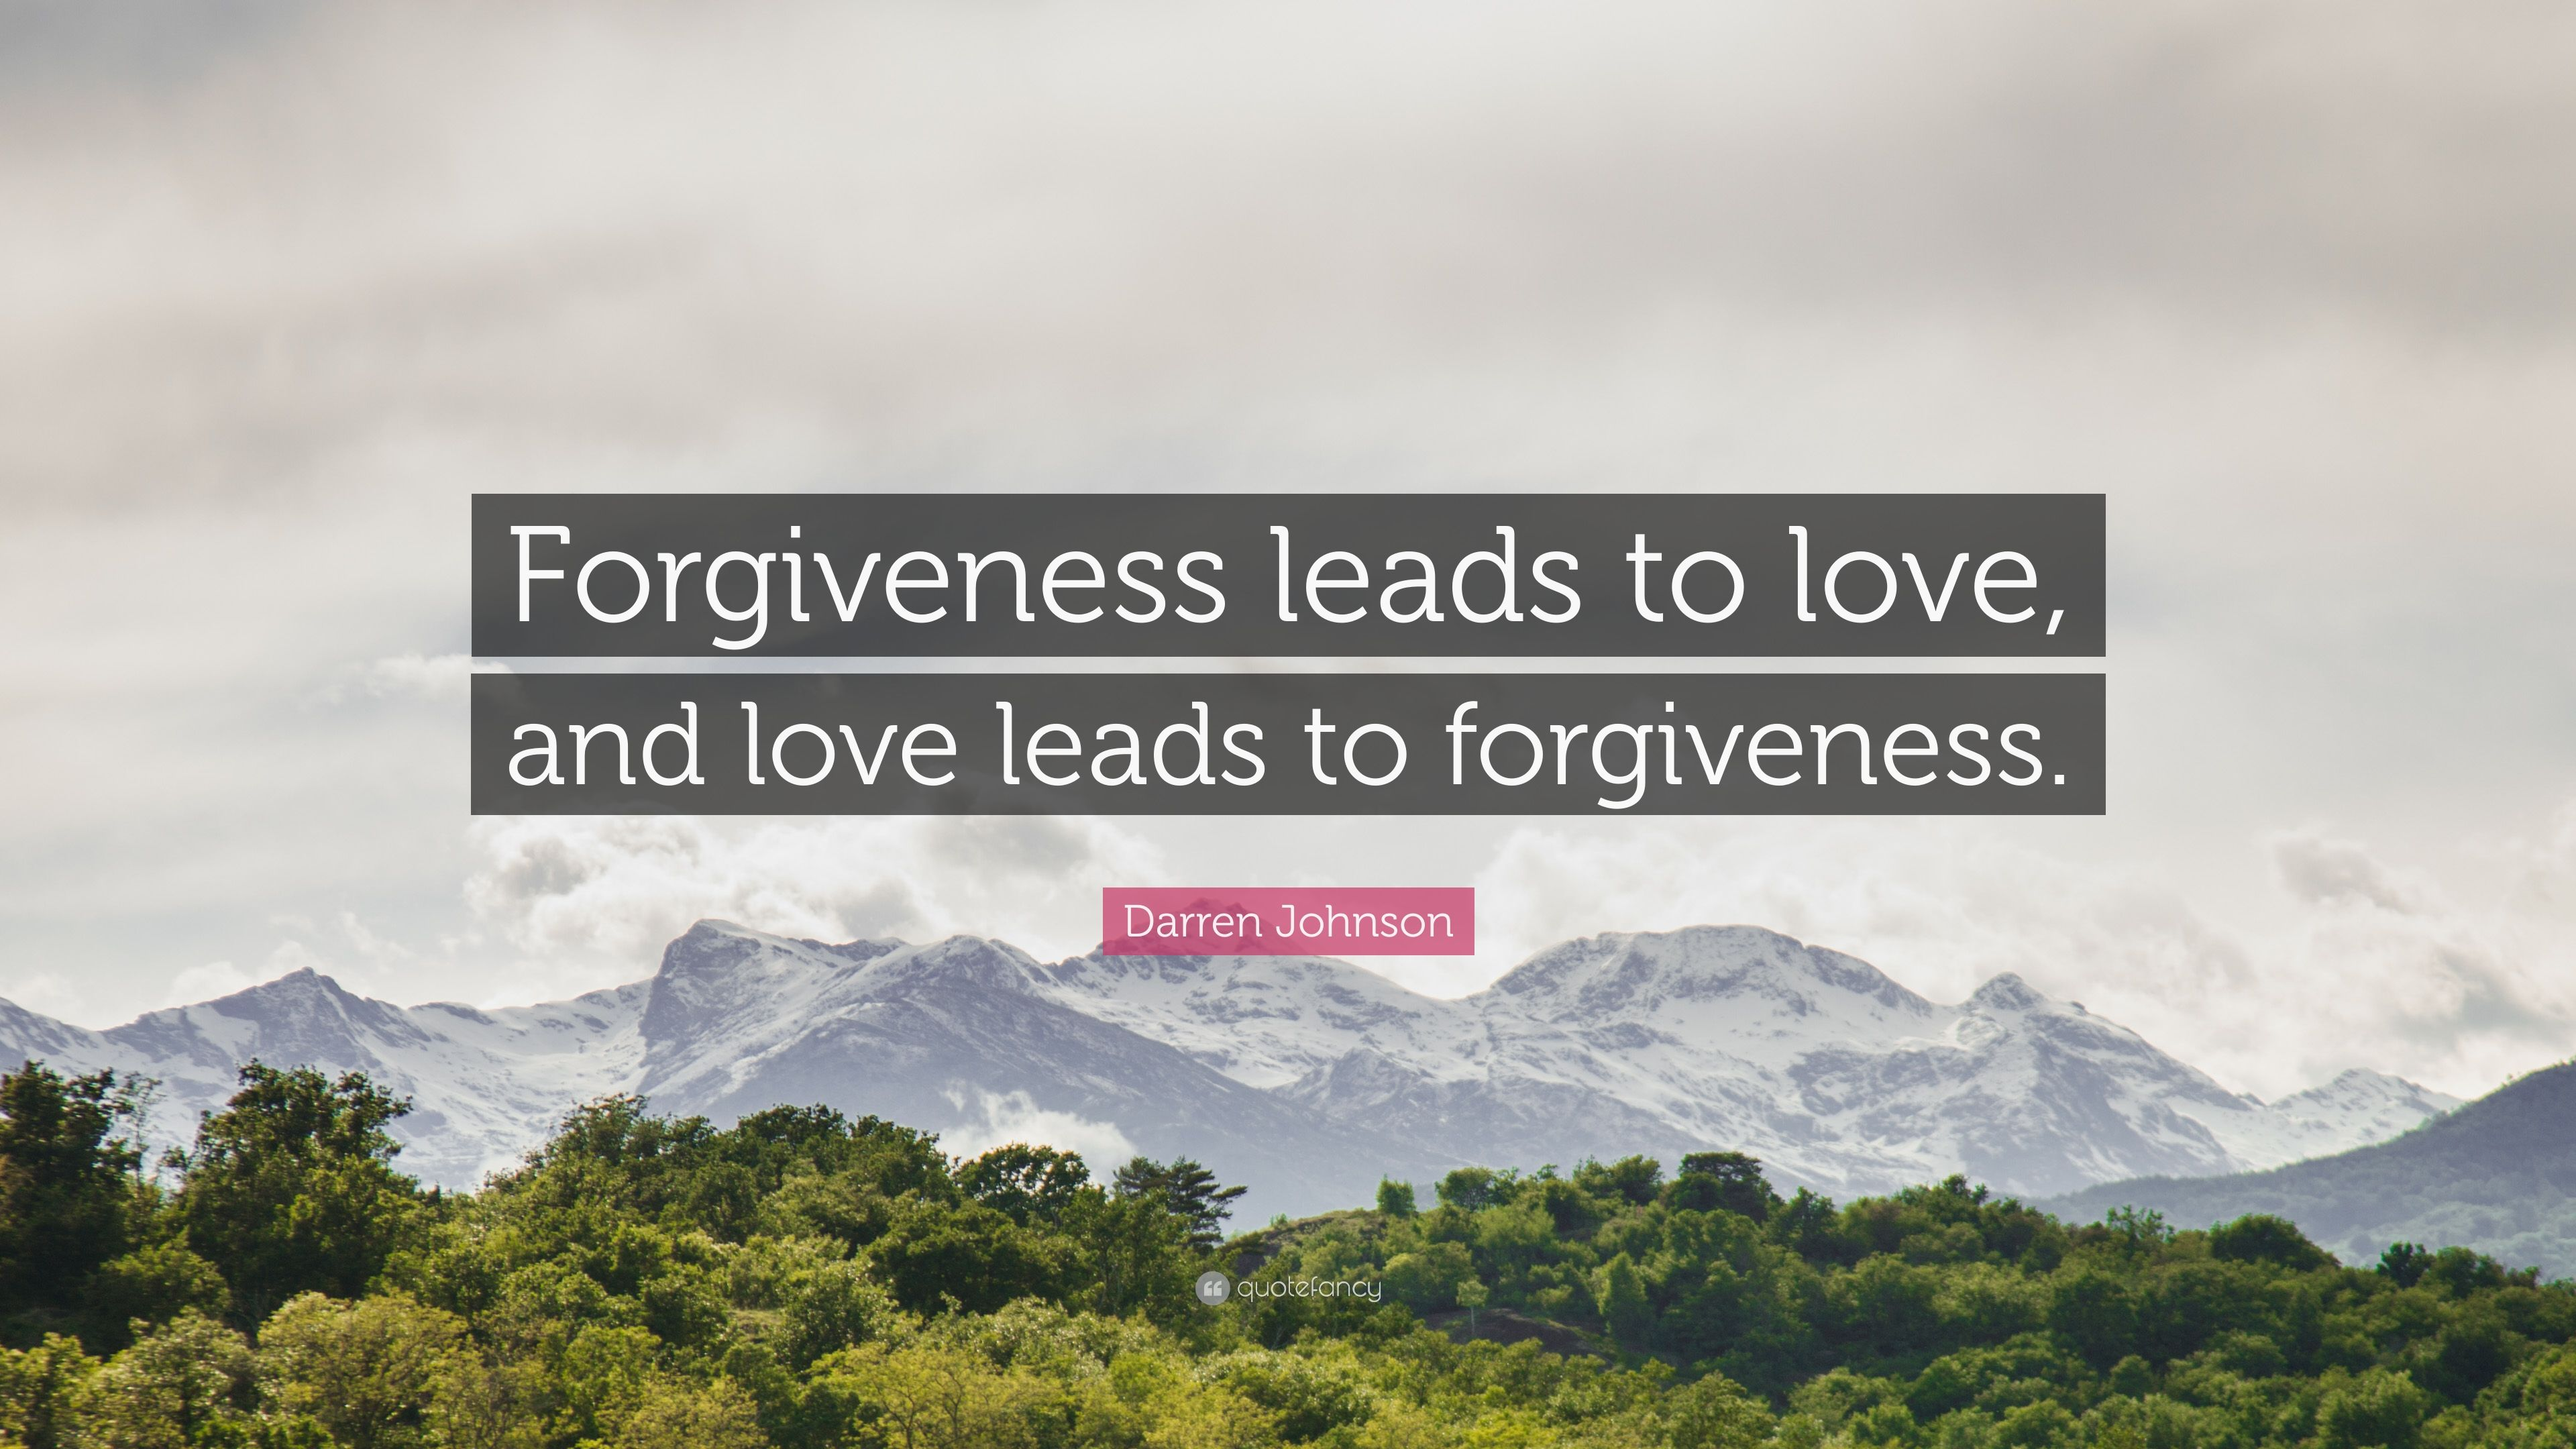 Charmant Darren Johnson Quote: U201cForgiveness Leads To Love, And Love Leads To  Forgiveness.